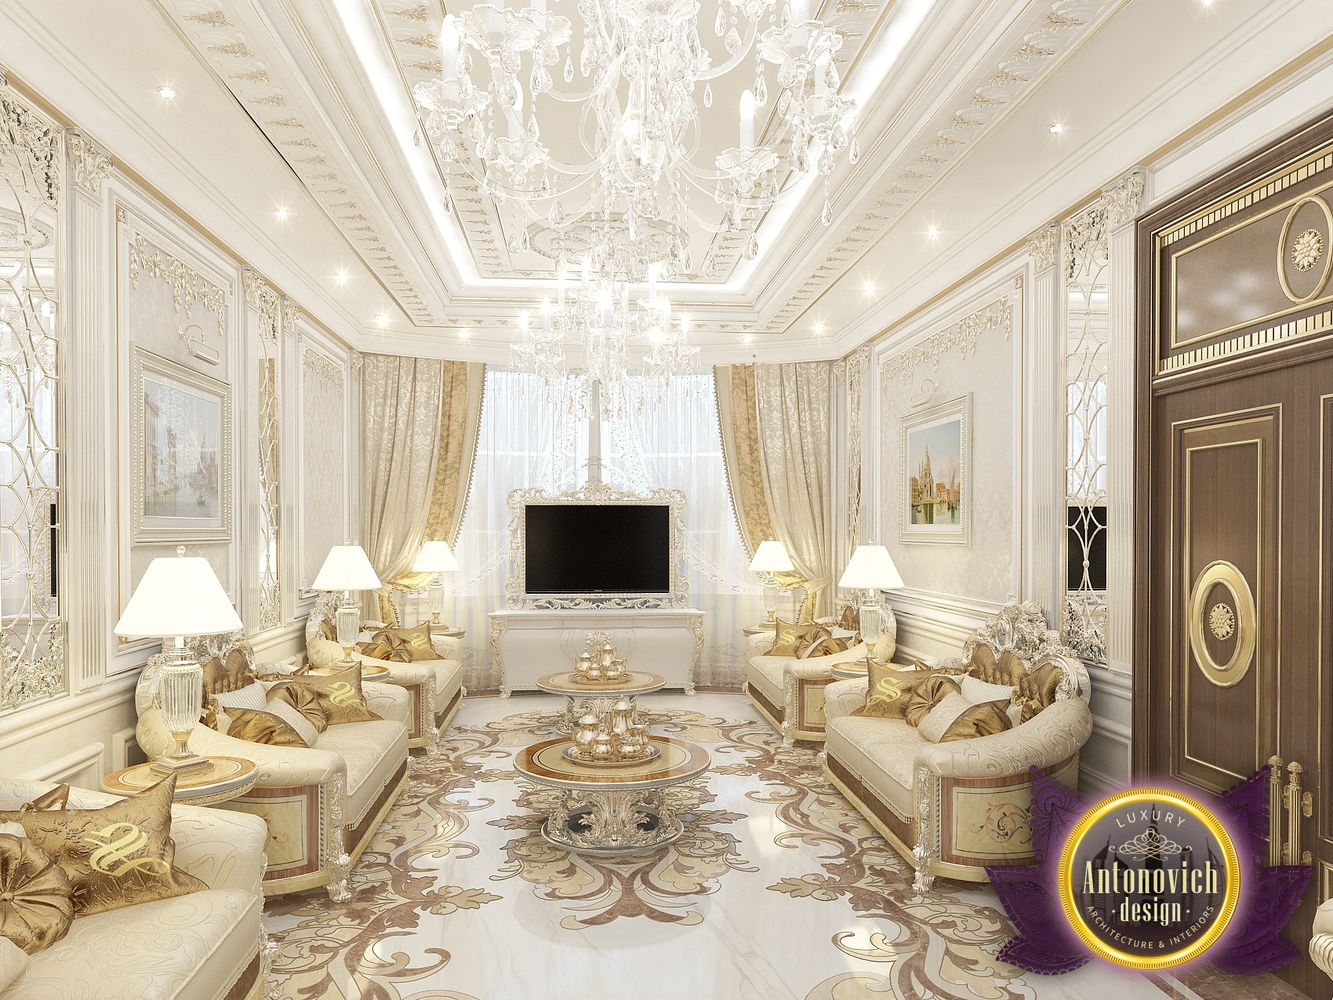 Luxury antonovich design uae living room interior design for Best luxury interior designers